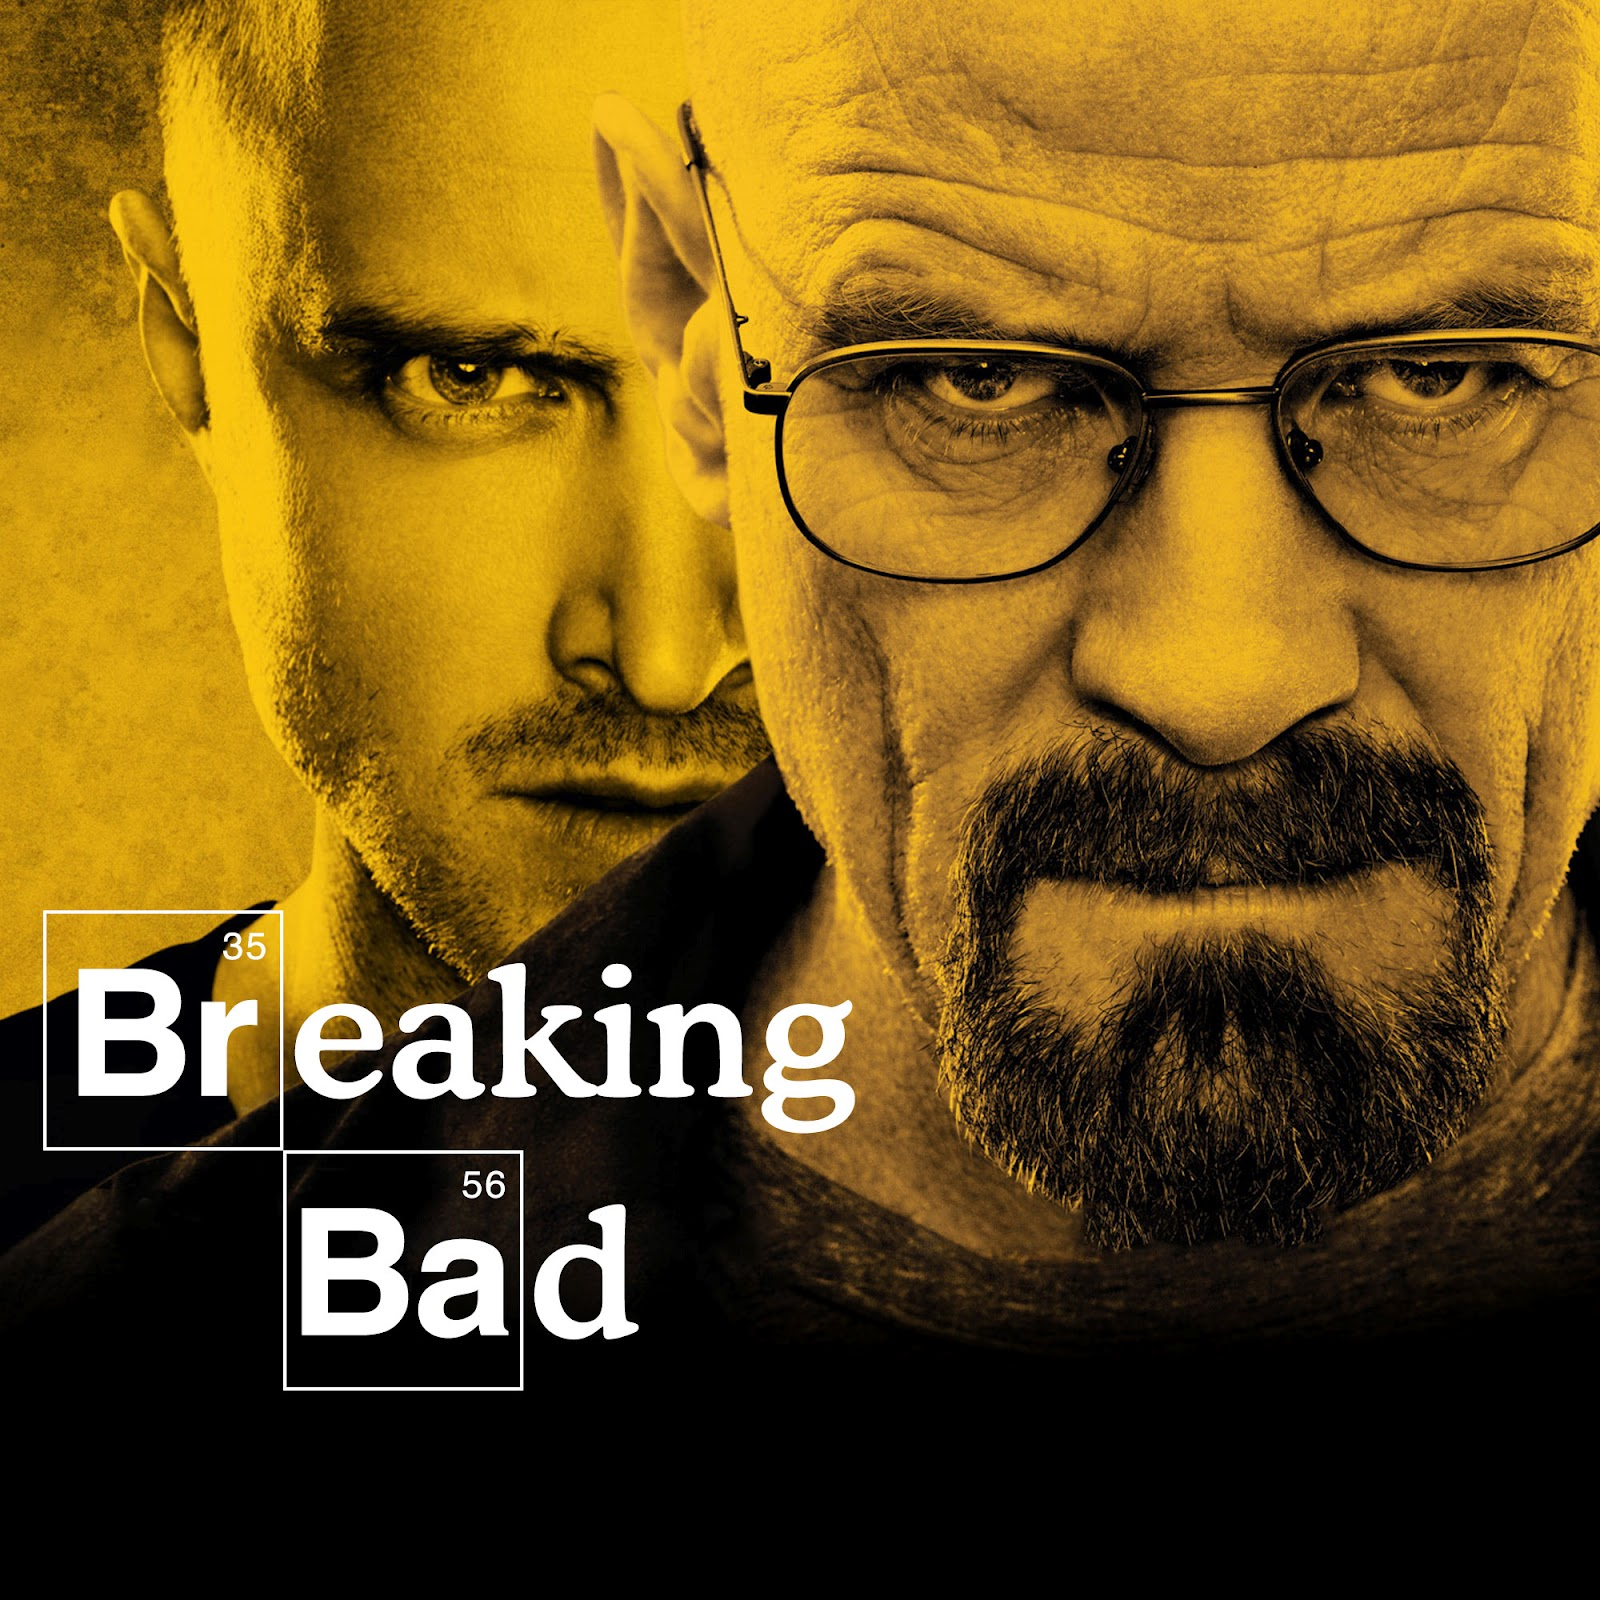 What to do now that Breaking Bad has ended